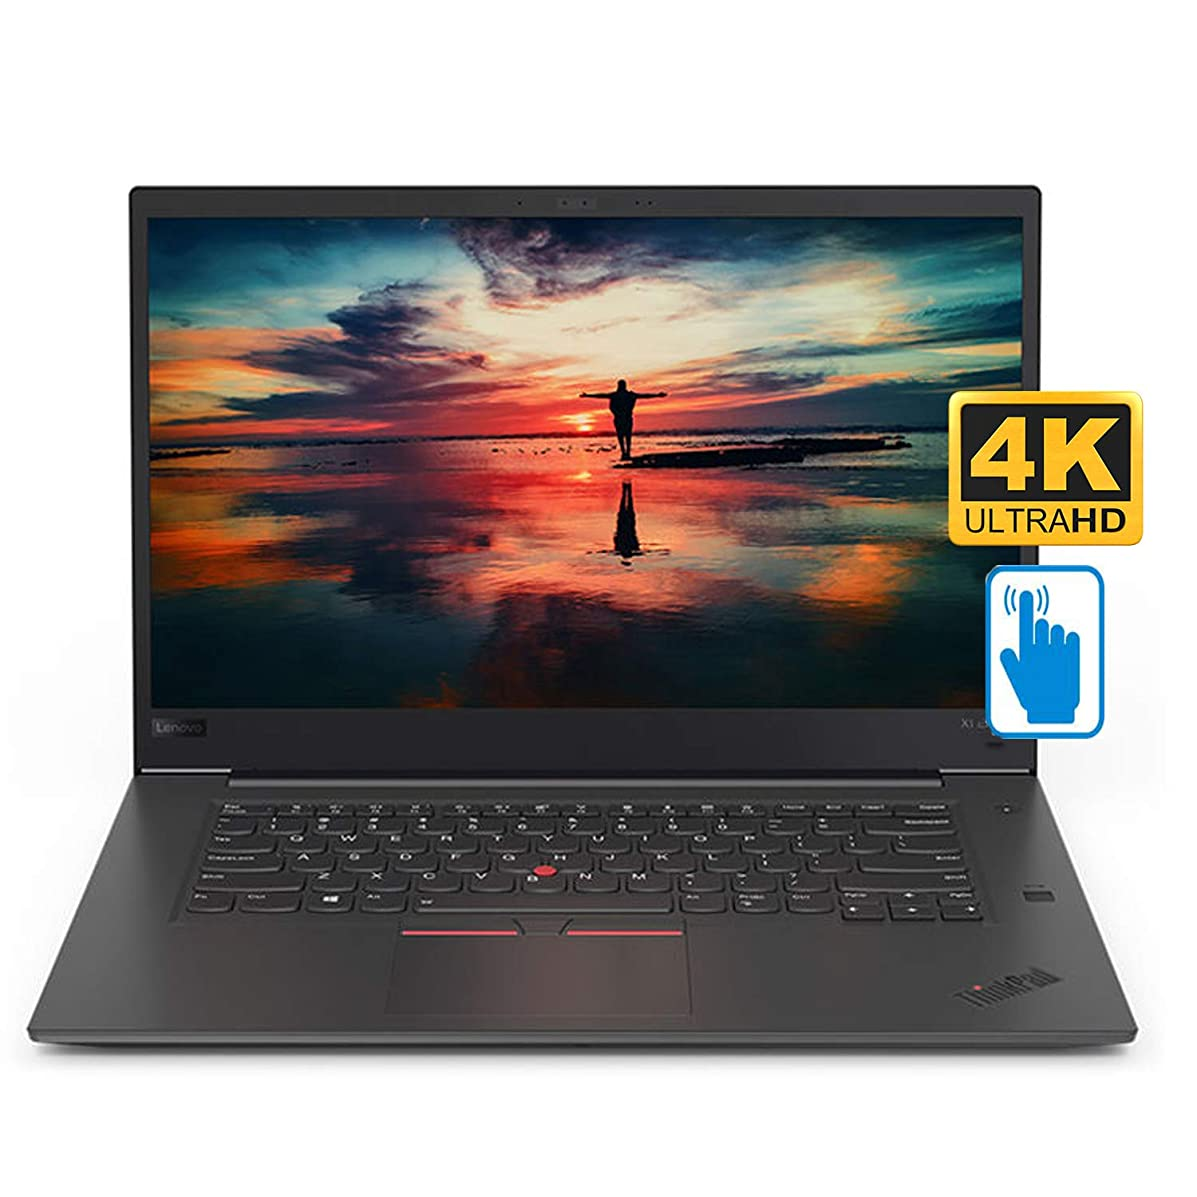 Lenovo ThinkPad X1 Extreme Premium Home and Business Laptop (Intel 8th Gen i7-8850H 6-Core, vPro, 32GB RAM, 1TB Sata SSD, 15.6